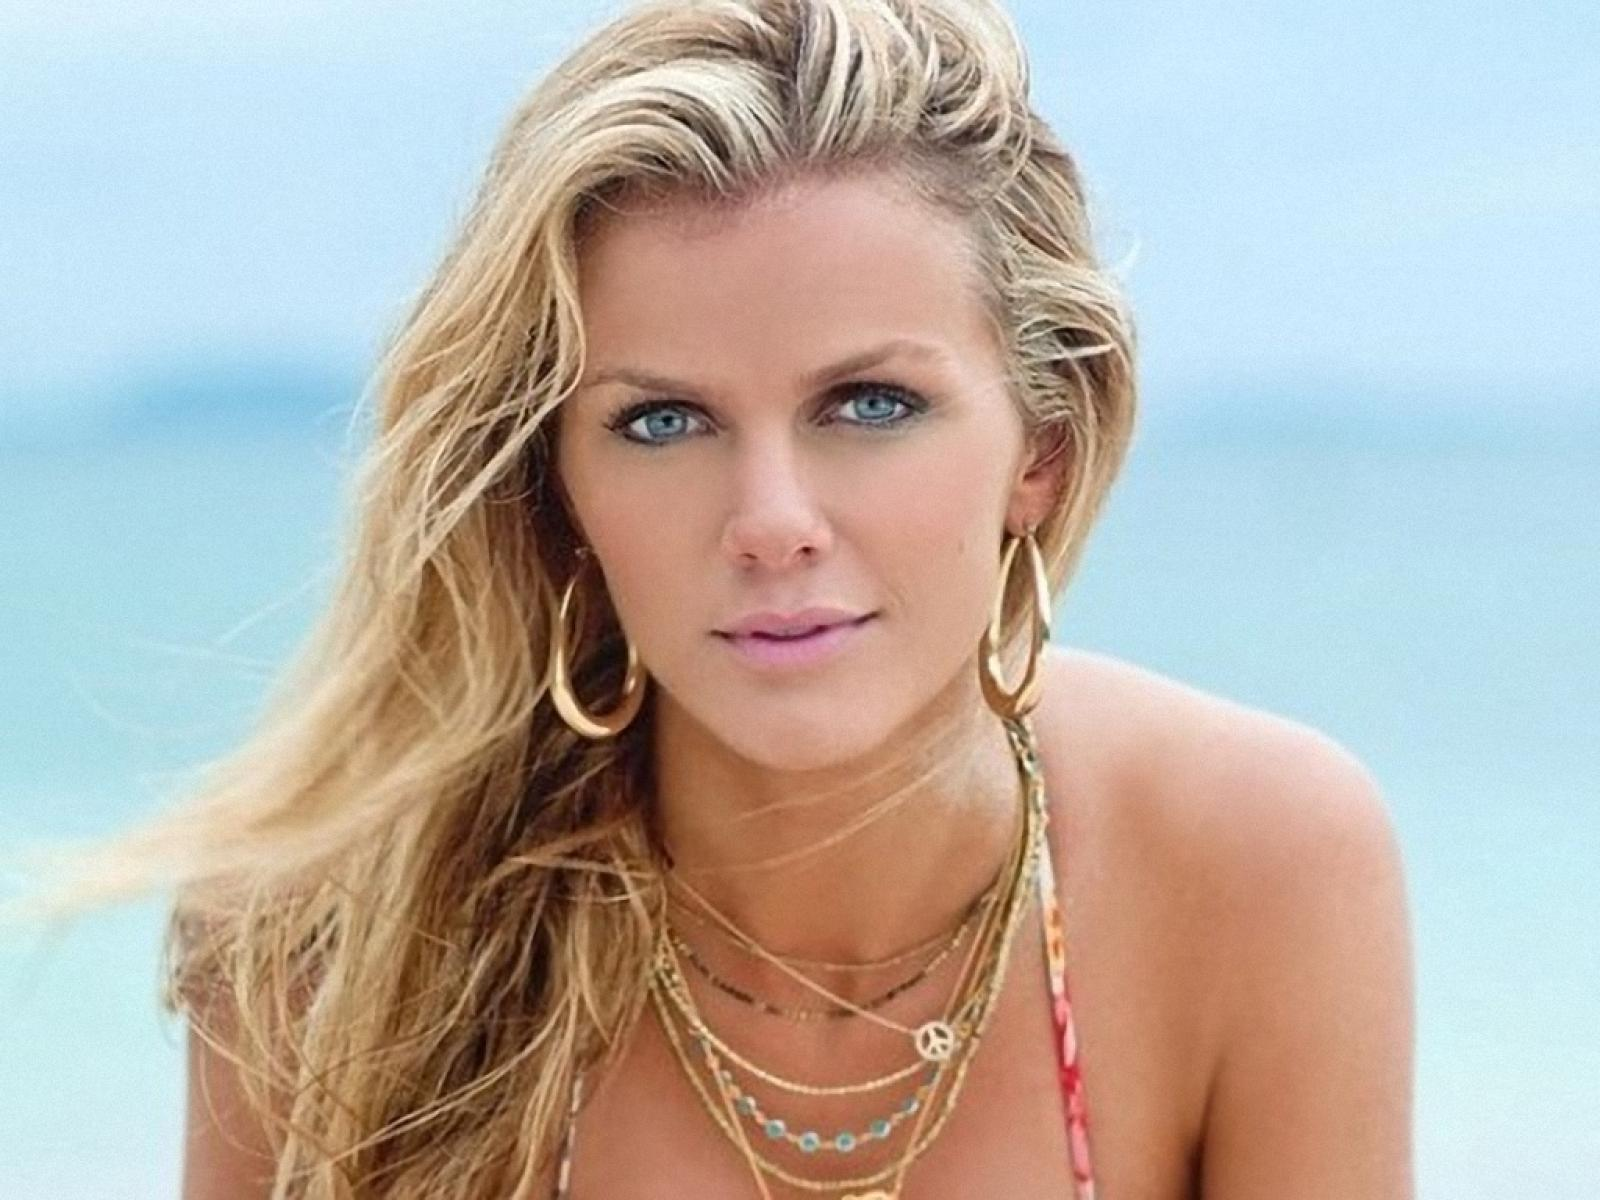 4k Wallpapers For Pc Cars Brooklyn Decker Wallpapers High Quality Download Free